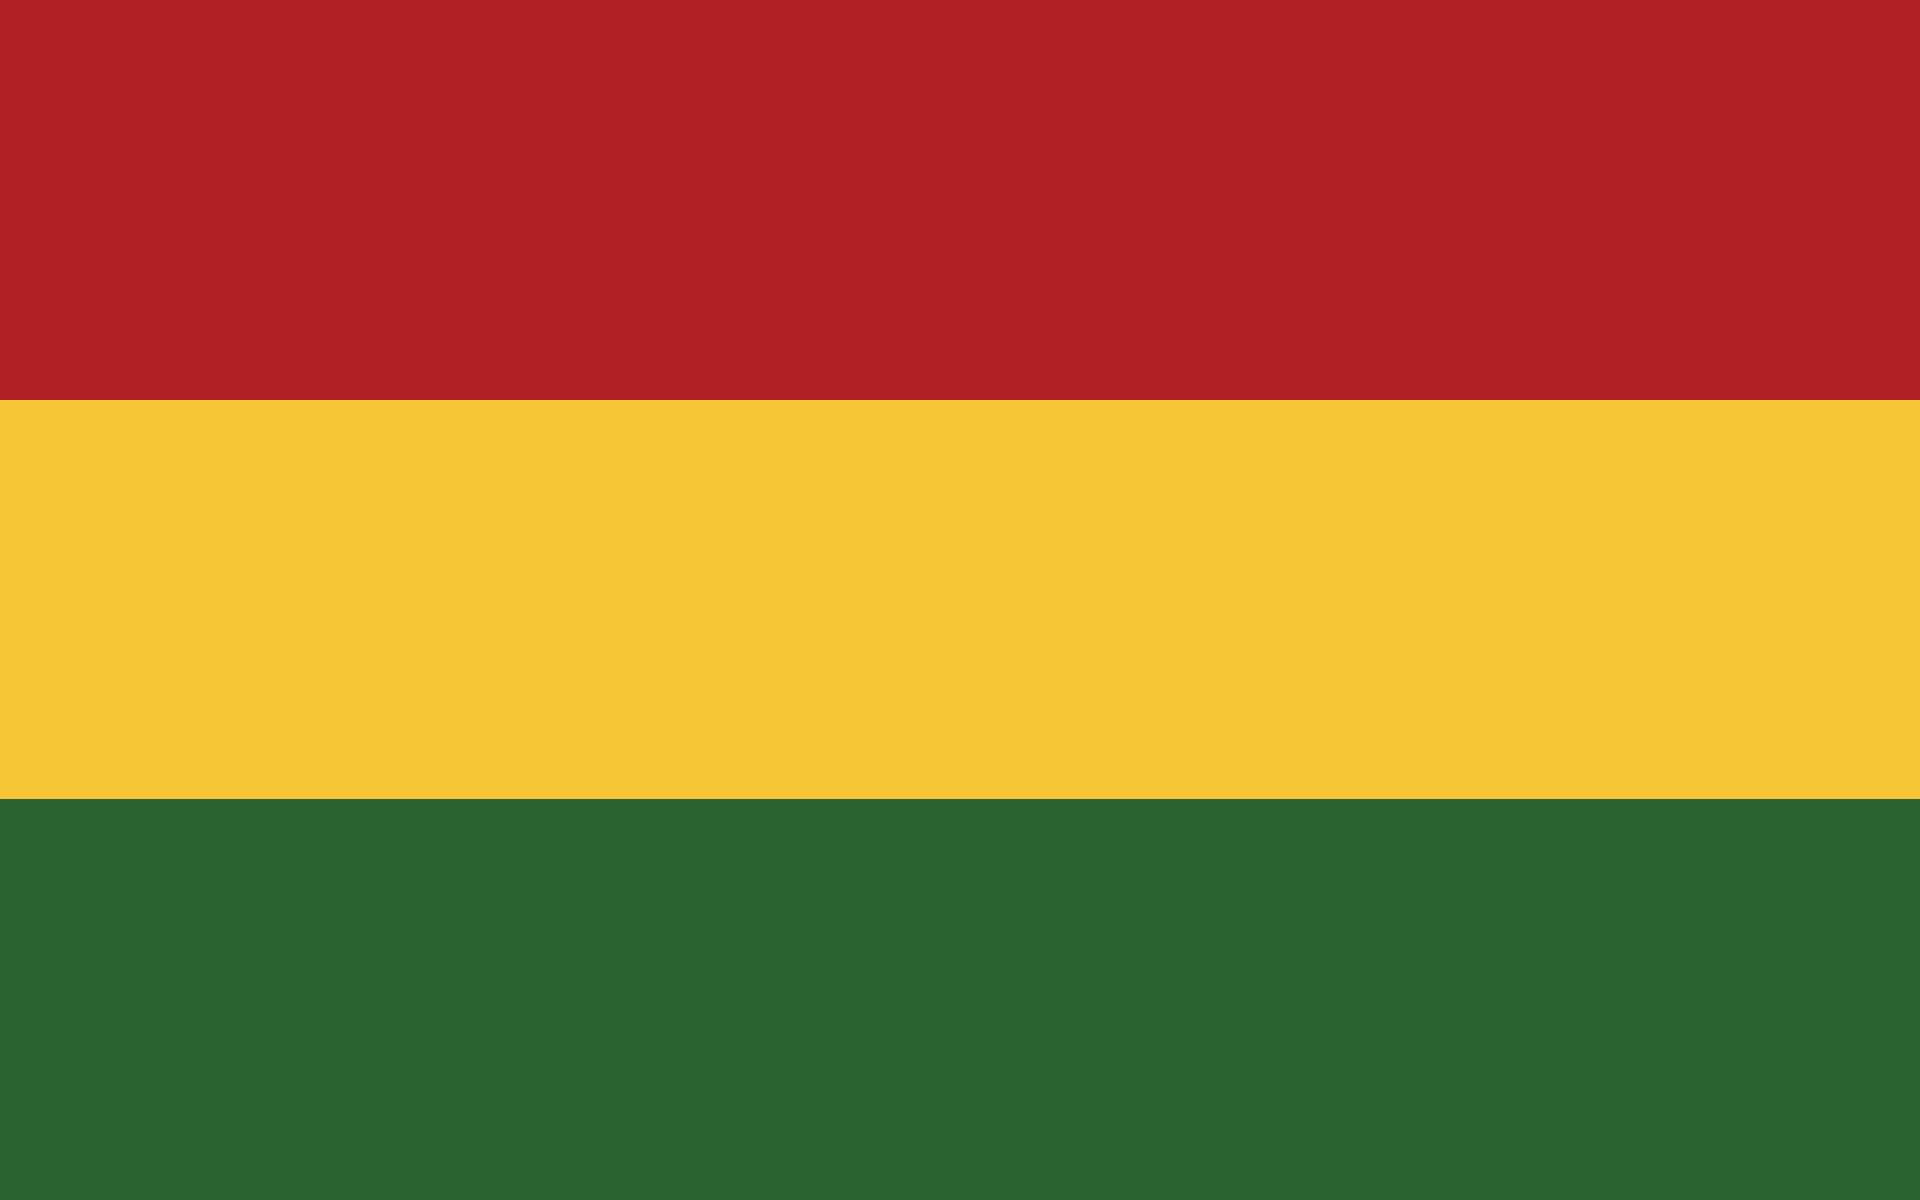 Rasta Colors Wallpaper